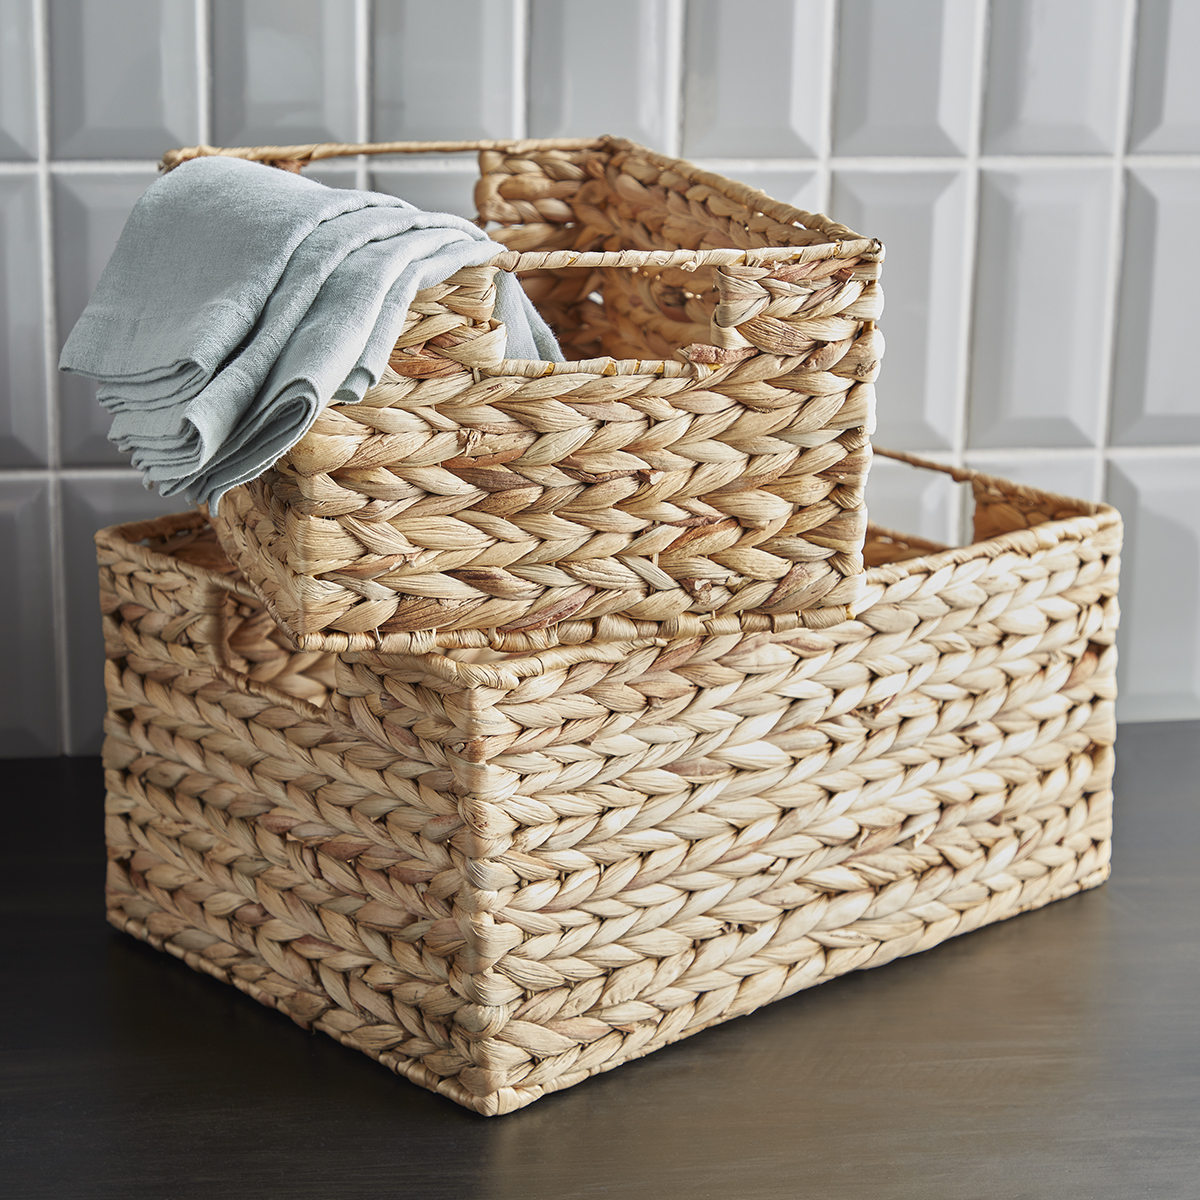 Cases of Water Hyacinth Storage Bins with Handles